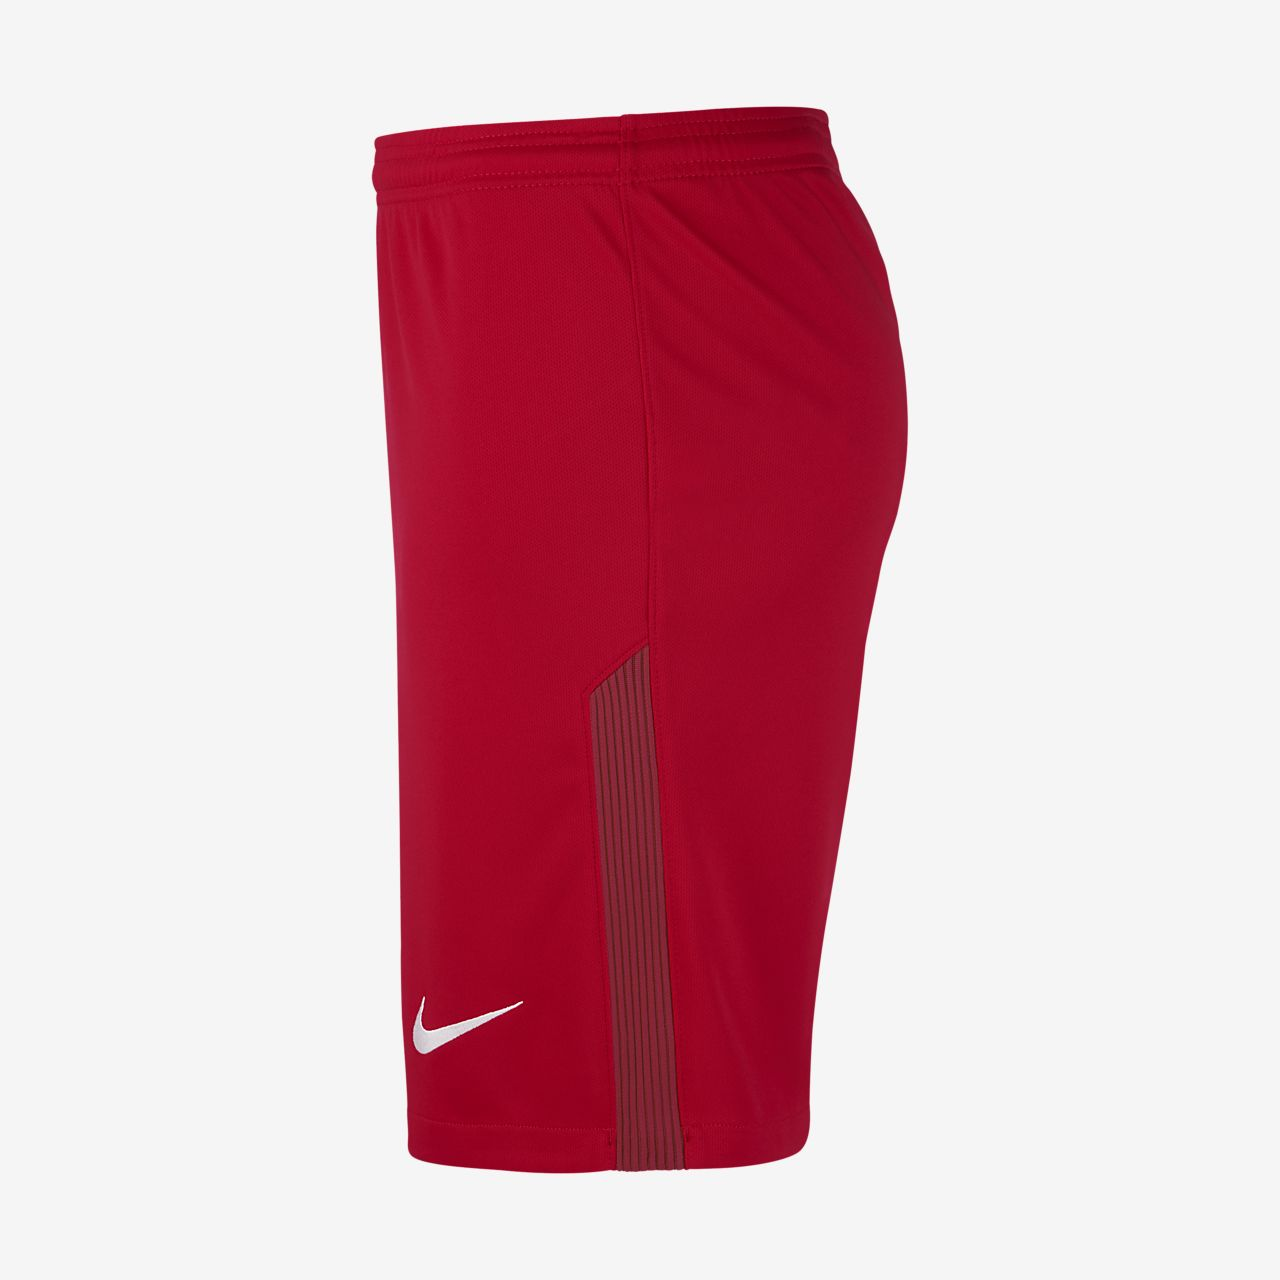 Kids' Clothes, Shoes & Accs. Spartak Moscow Kids Official Nike Football Shorts Burgundy Clothes, Shoes & Accessories